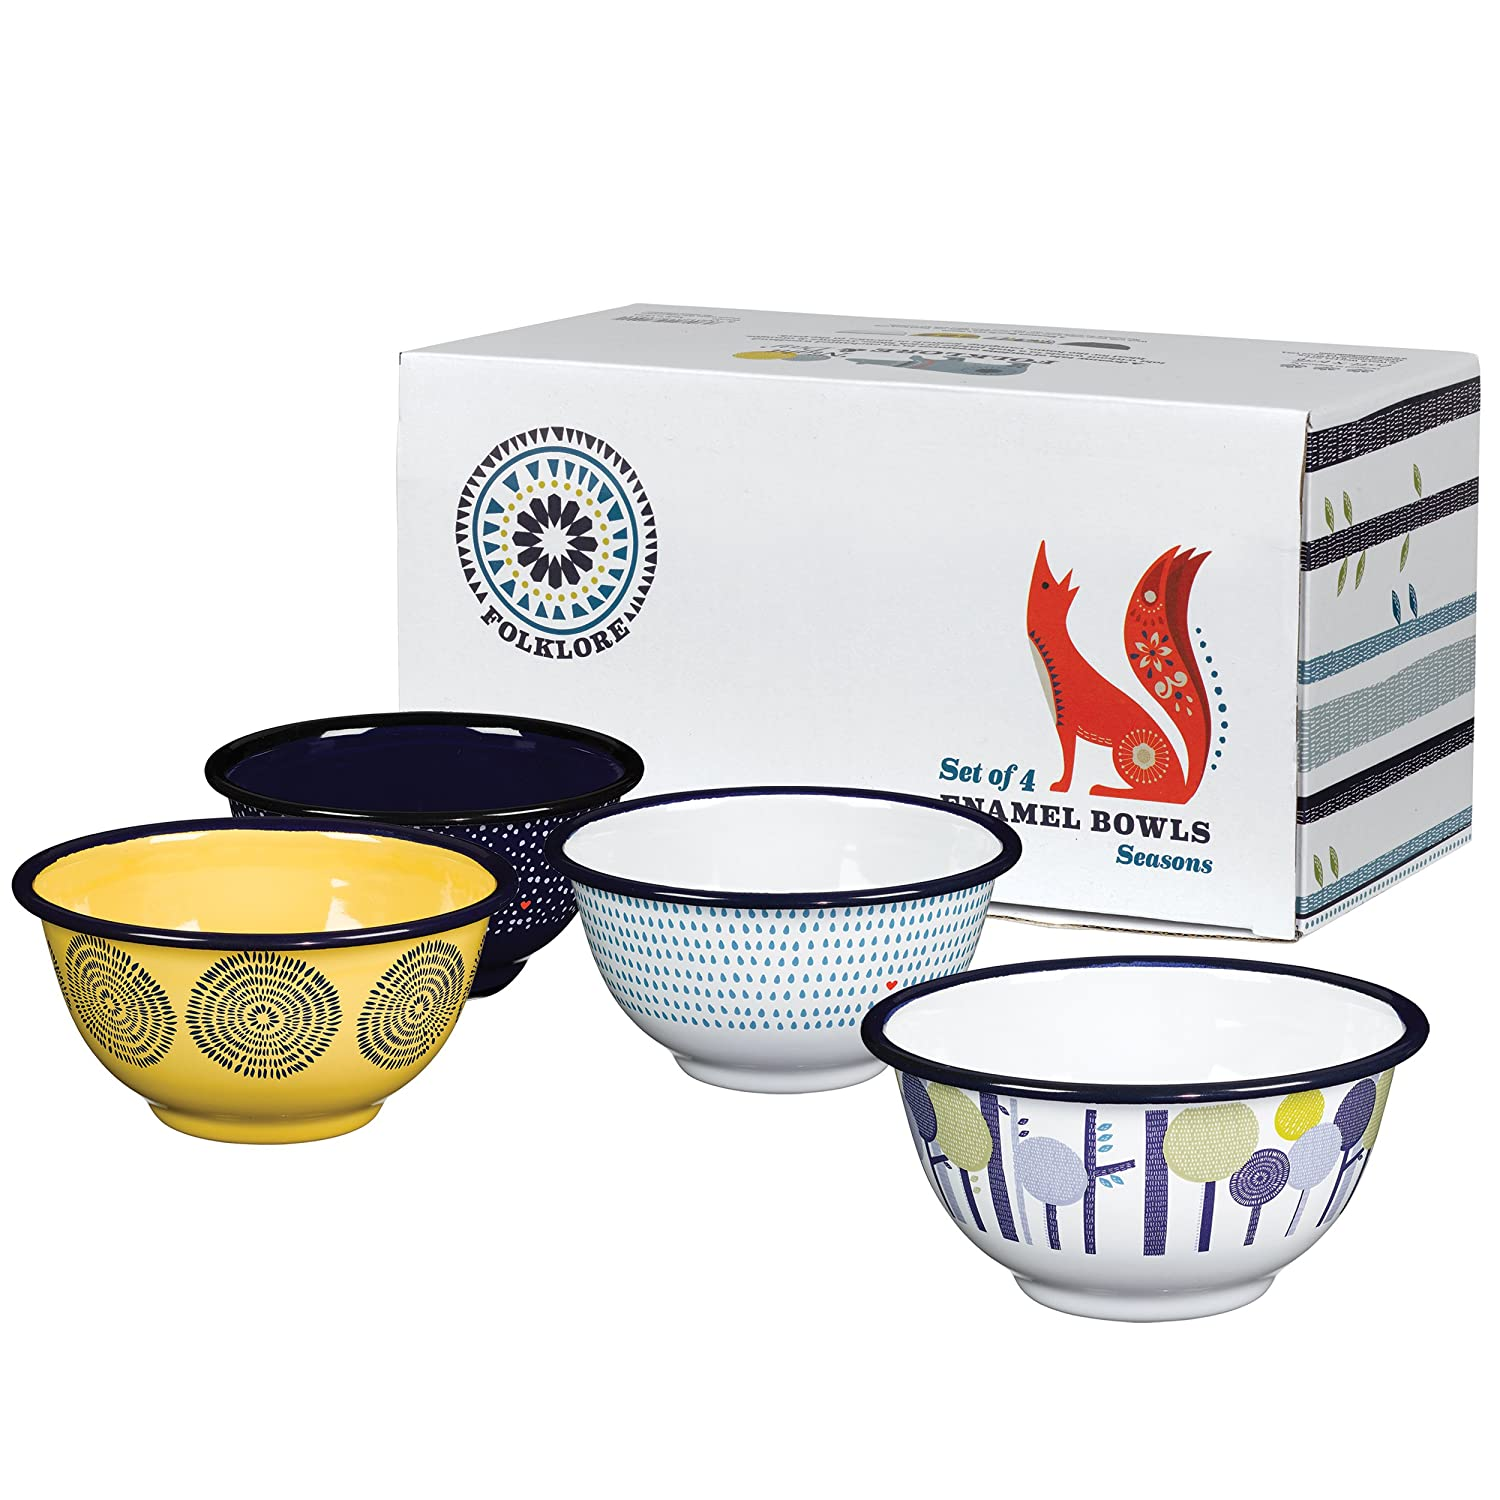 Folklore Enamel Bowls, Seasons Designs (Set of 4) AFOL030